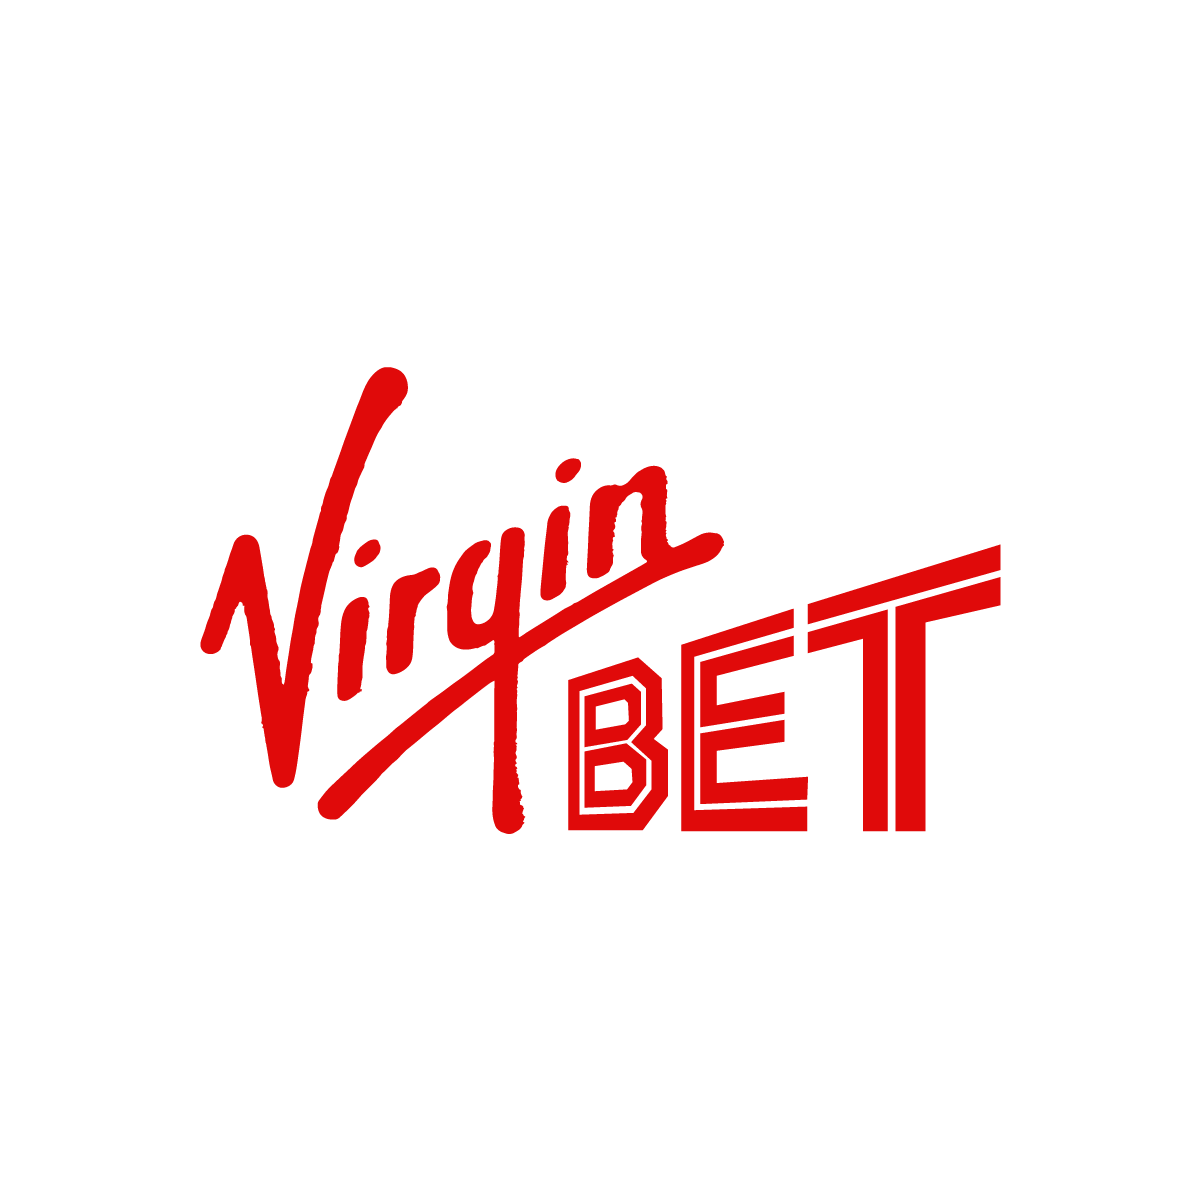 Virgin Bet logo in red - on a white background.